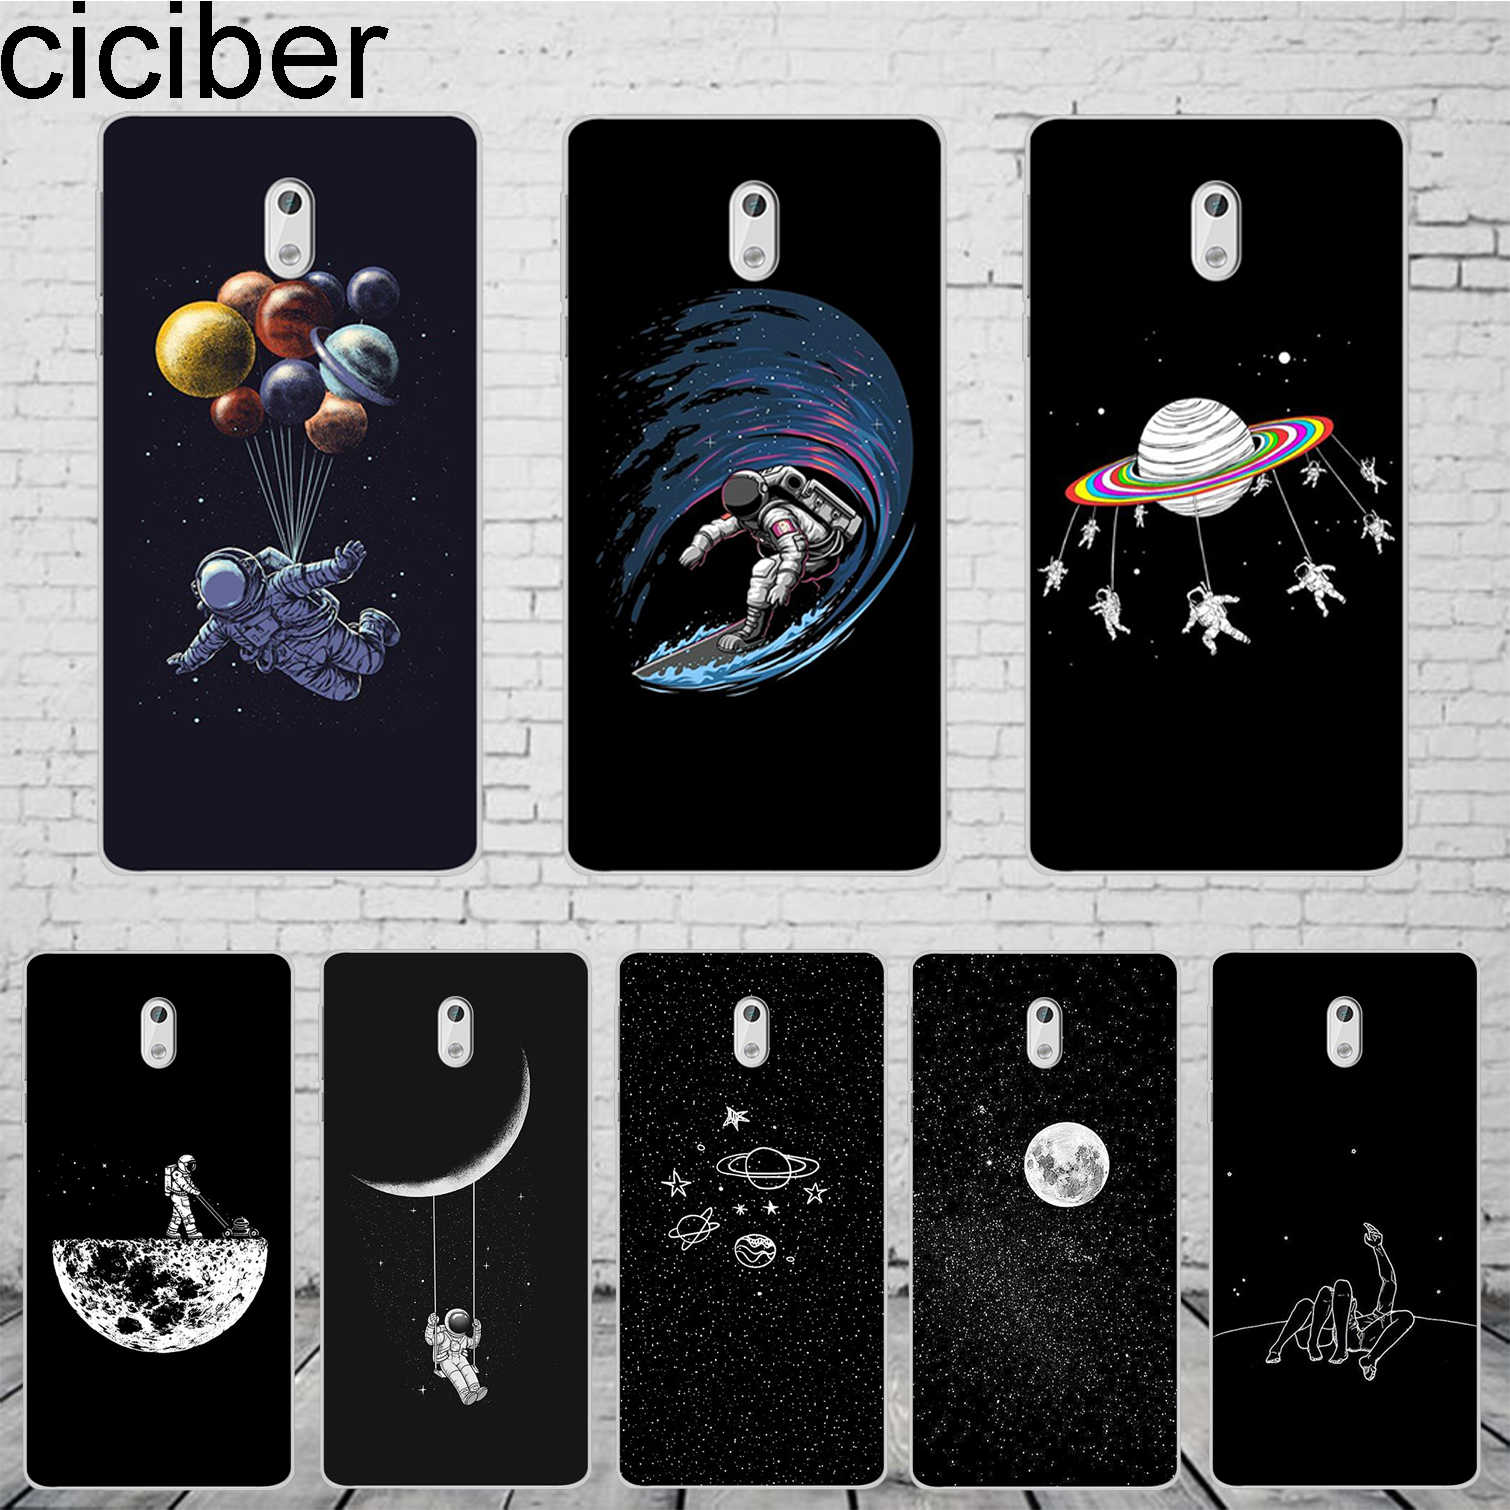 ciciber Space Moon Astronaut Coque For Nokia 8 7 7.1 6 6.1 5 5.1 3 3.1 2.1 Plus Phone case For Nokia X7 X6 X5 X3 Cover Soft TPU